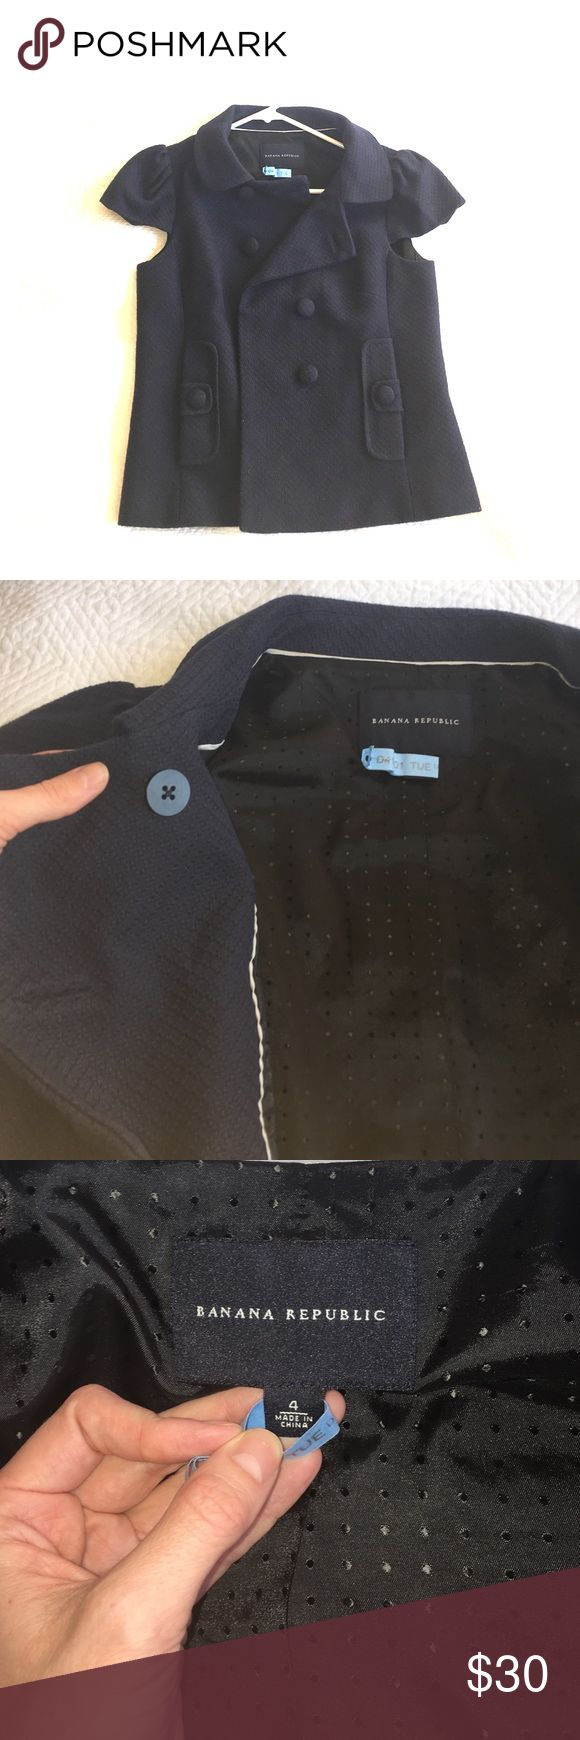 Banana Republic navy cap sleeve jacket. NWOT!! Cute Banana Republic navy blue cap sleeve jacket. Size 4, NWOT, never been worn! I've had this in my closet for a couple of years and so I recently decided to get it dry cleaned to sell (hence the dry cleaning tag 😊). Pet-free, smoke-free house. Price firm. Shell: 100% cotton (heavy). Polka dot lining: 50% nylon, 50% acetate. Banana Republic Jackets & Coats